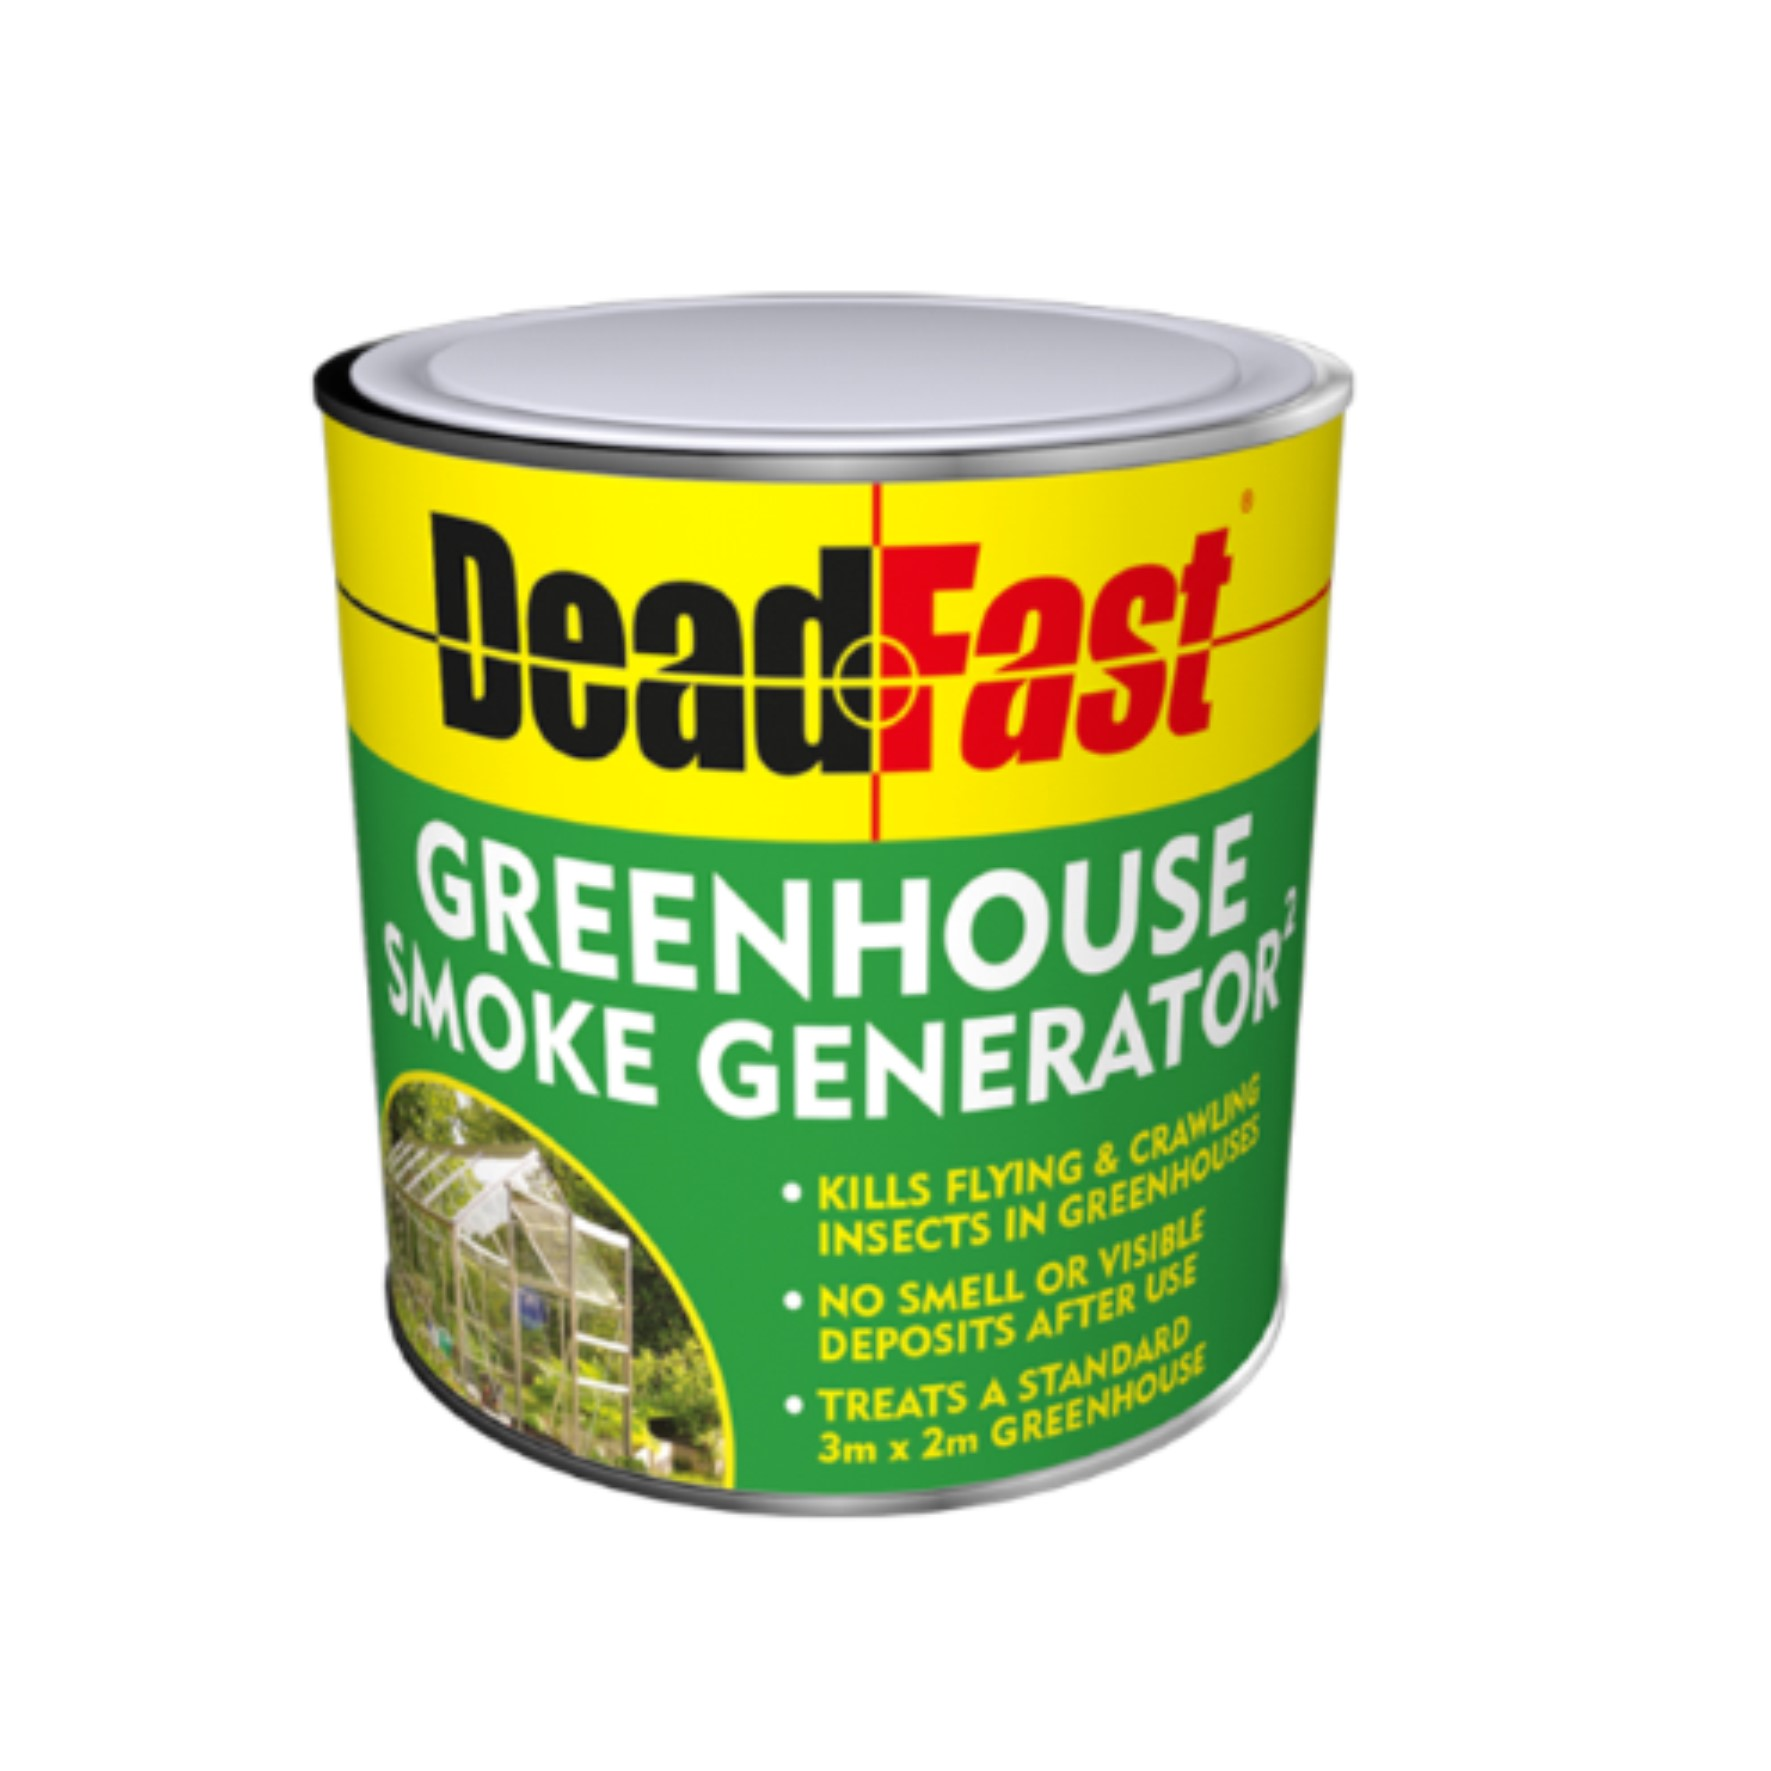 Greenhouse Smoke Fumigator